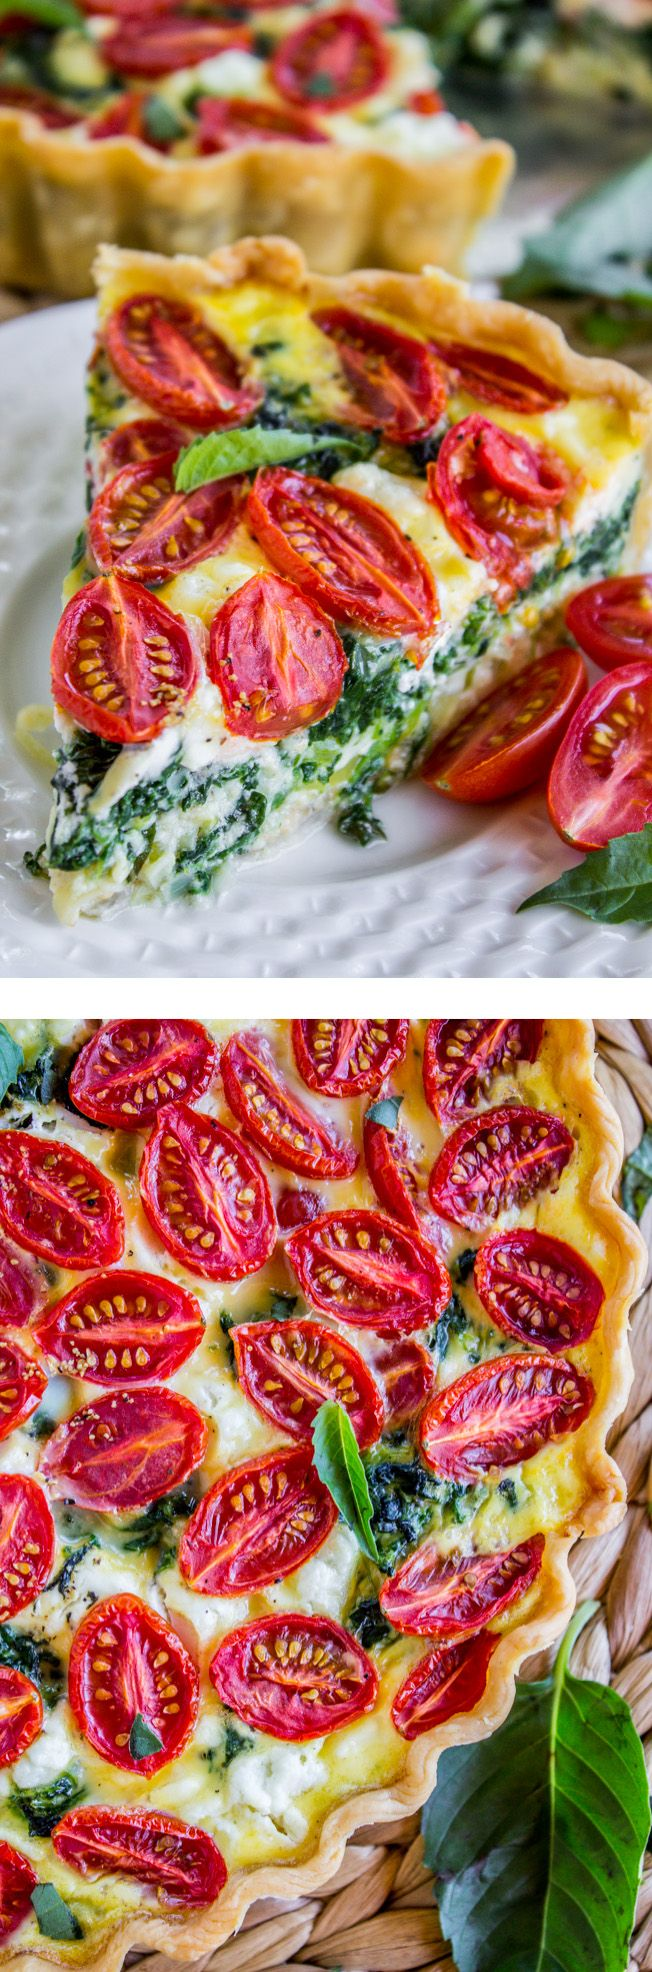 Cherry Tomato, Leek, and Spinach Quiche from The Food Charlatan. Quiche is the…